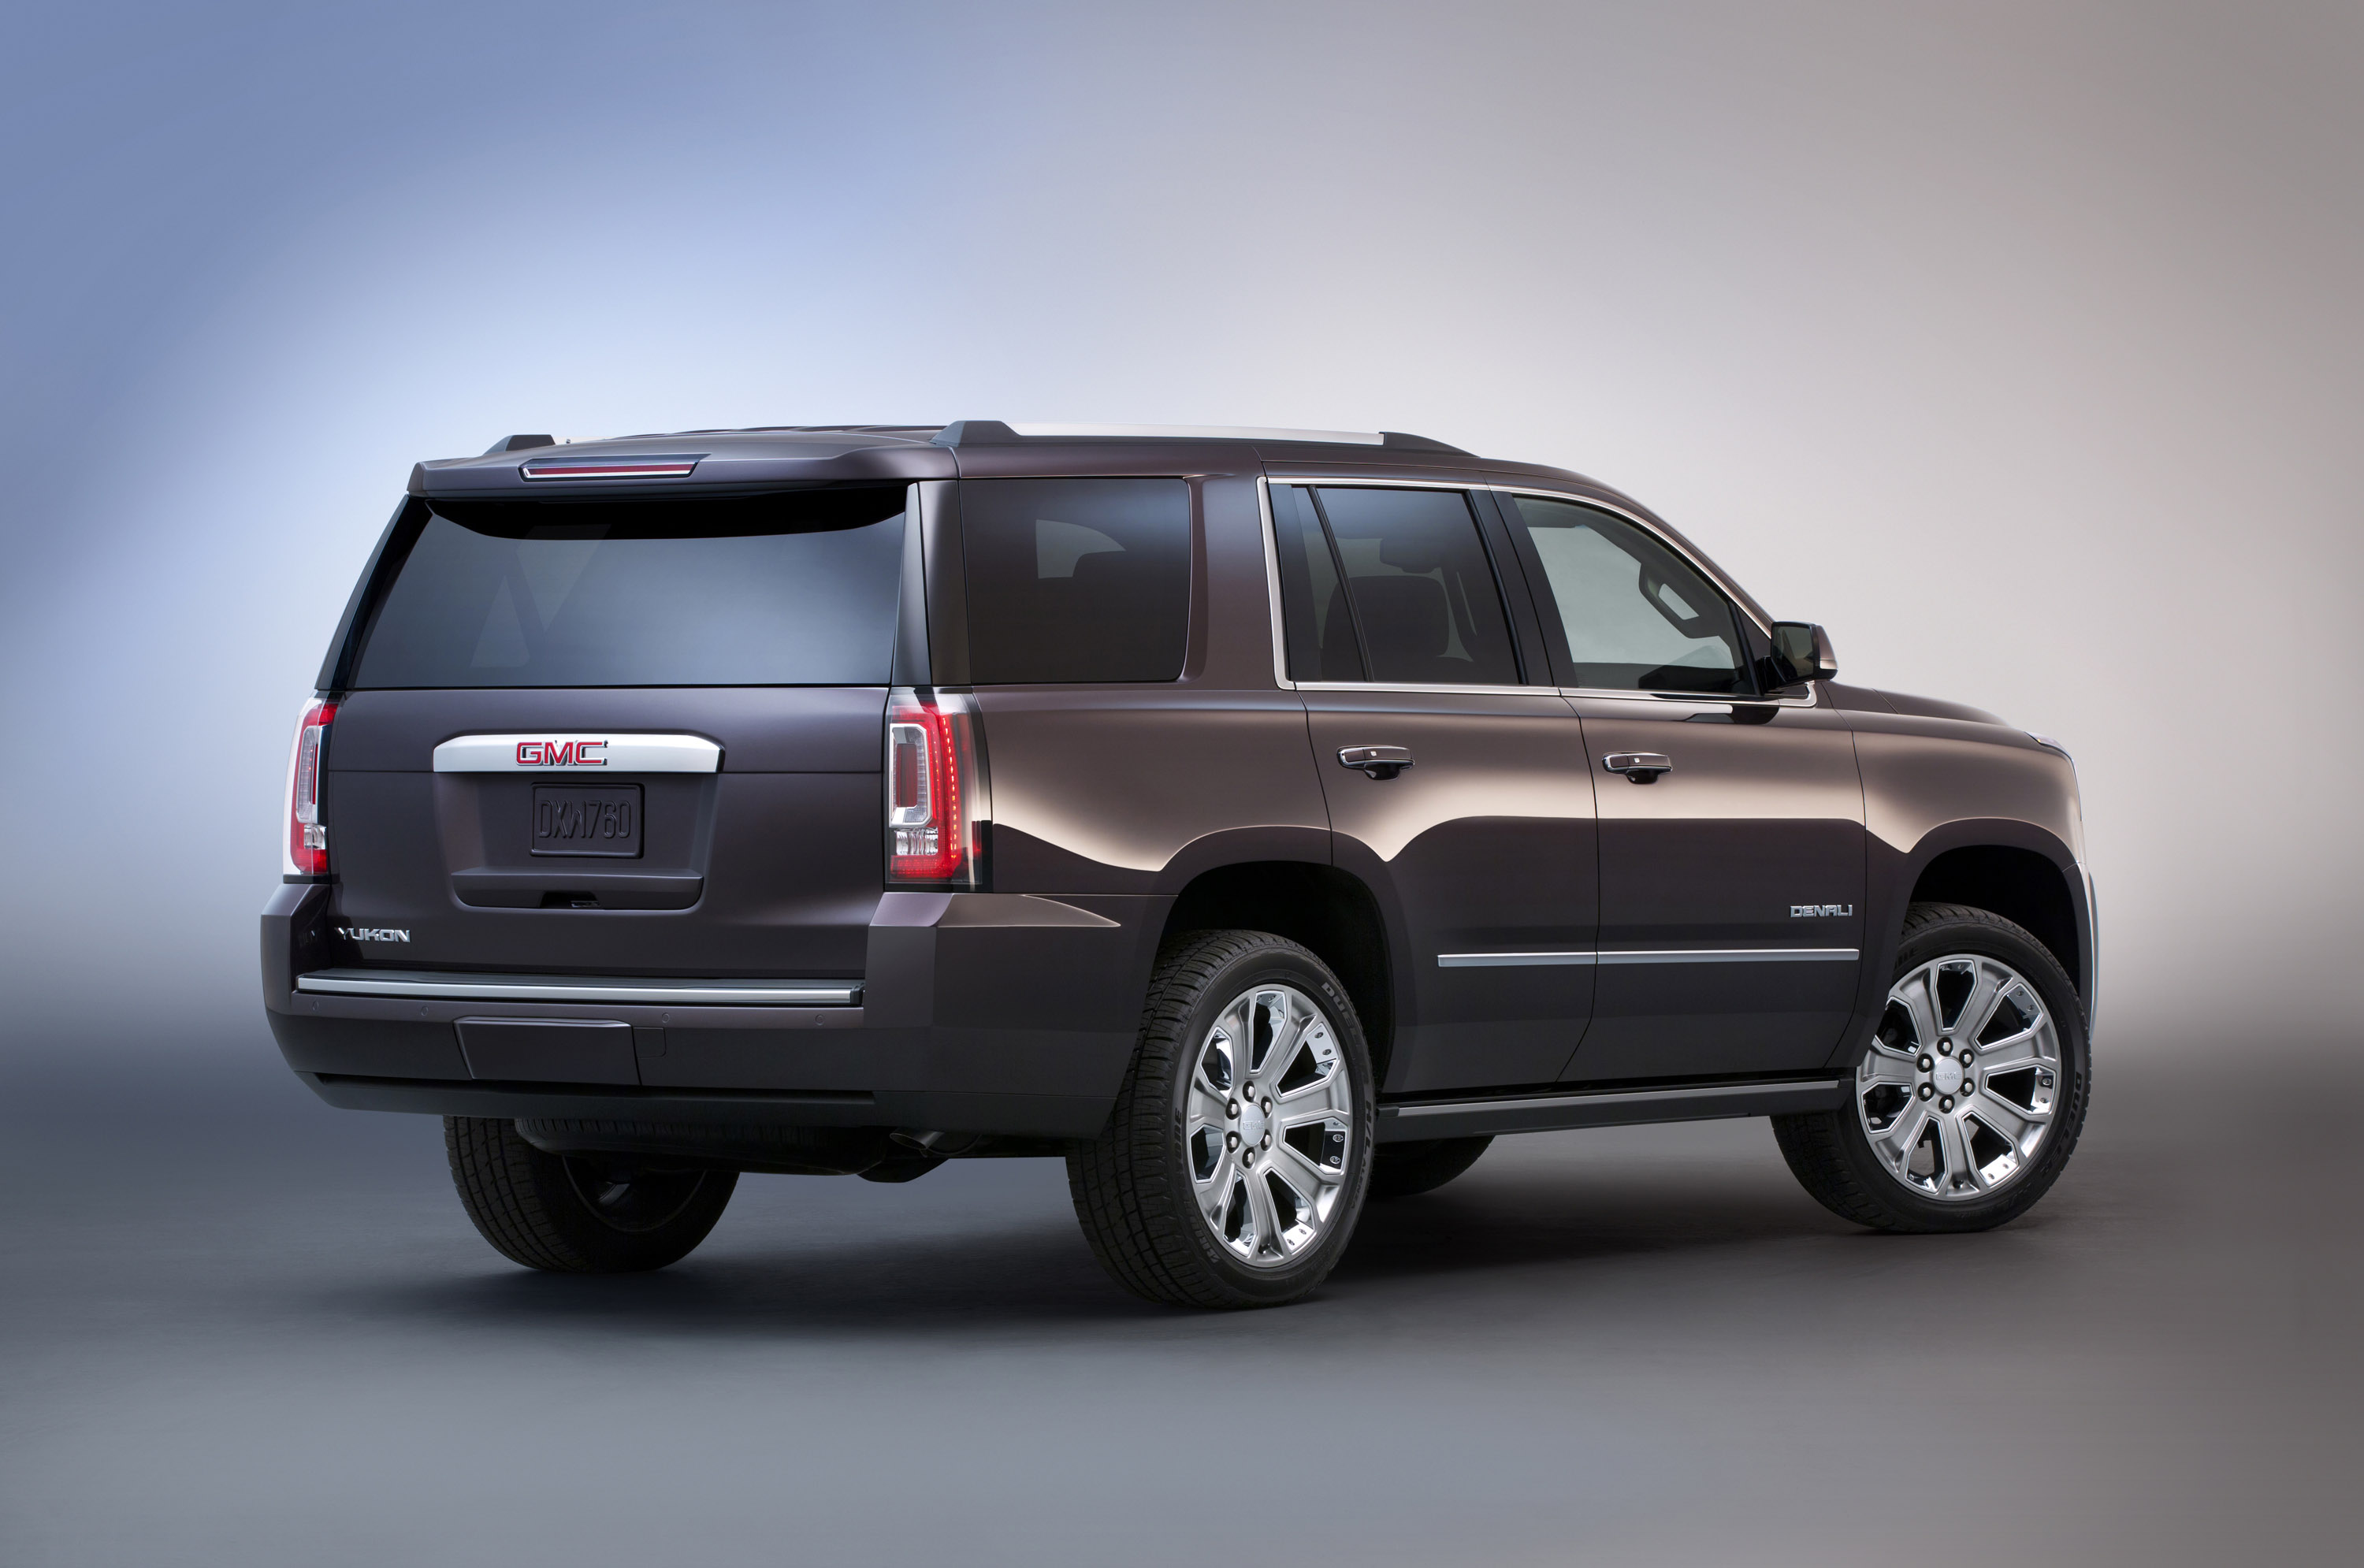 yukon denali pictures picture wallpaper gmc